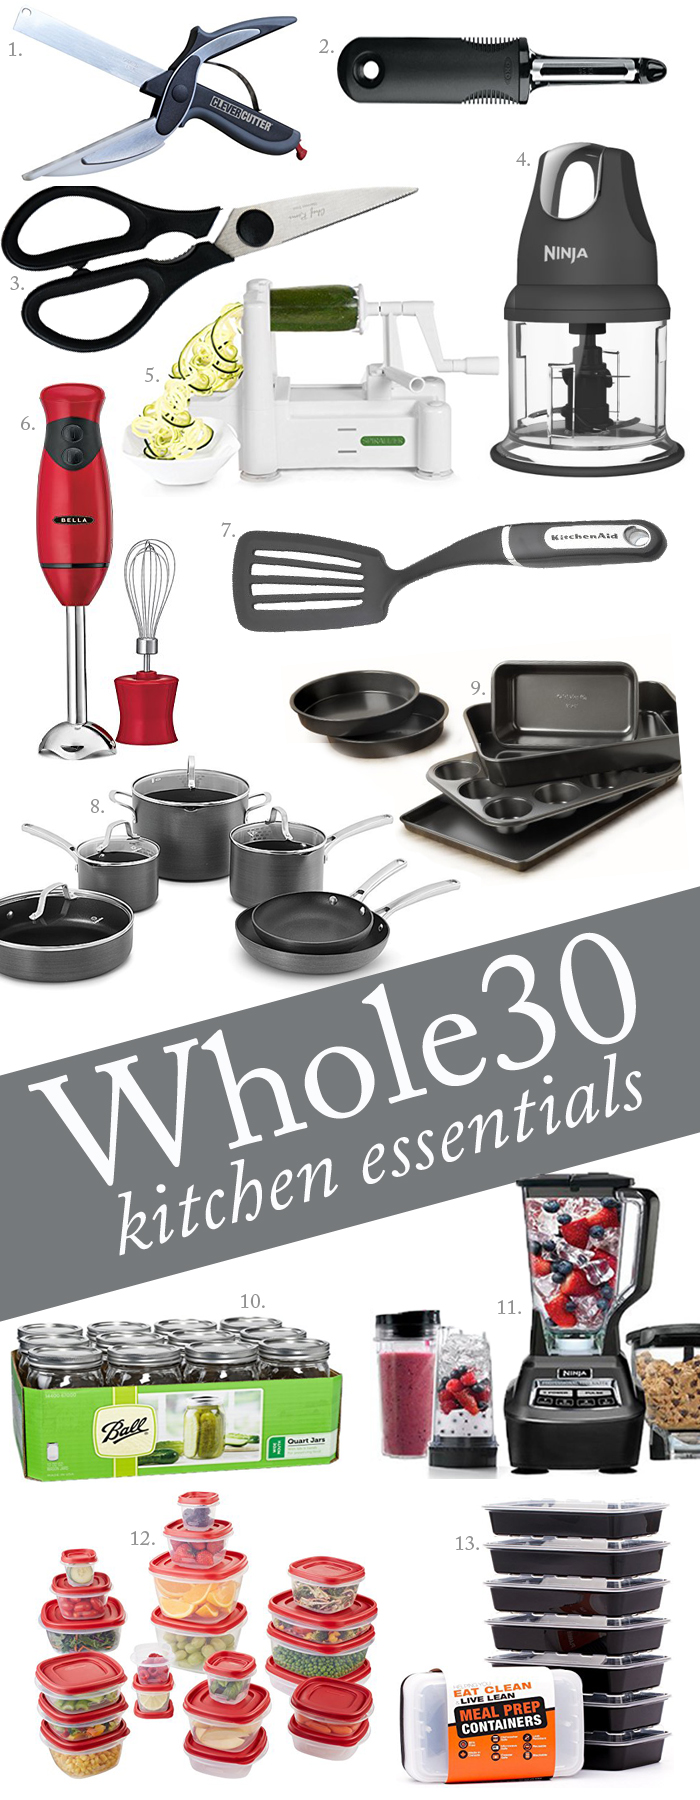 Whole30 Kitchen Essentials Shopping List - Whole30 Grocery List featured by popular Texas lifestyle blogger, Style Your Senses